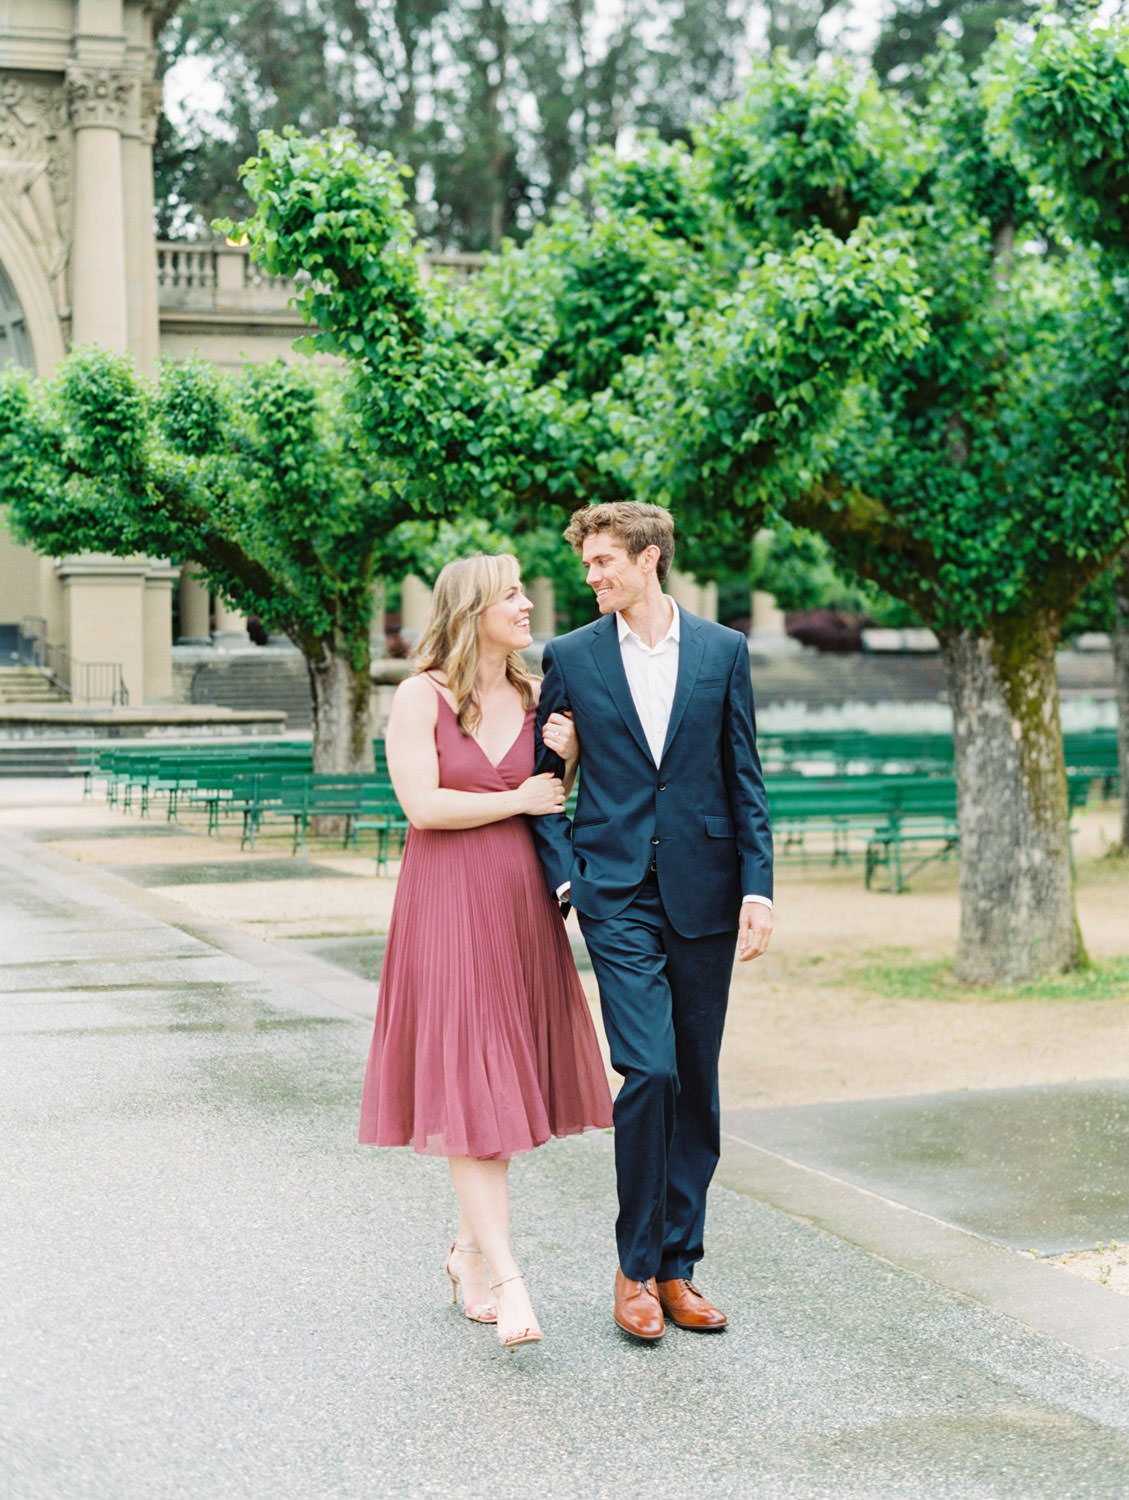 Bride in a deep mauve dress and groom in navy suit walking through a park. Film Engagement Photos at Golden Gate Park by Cavin Elizabeth